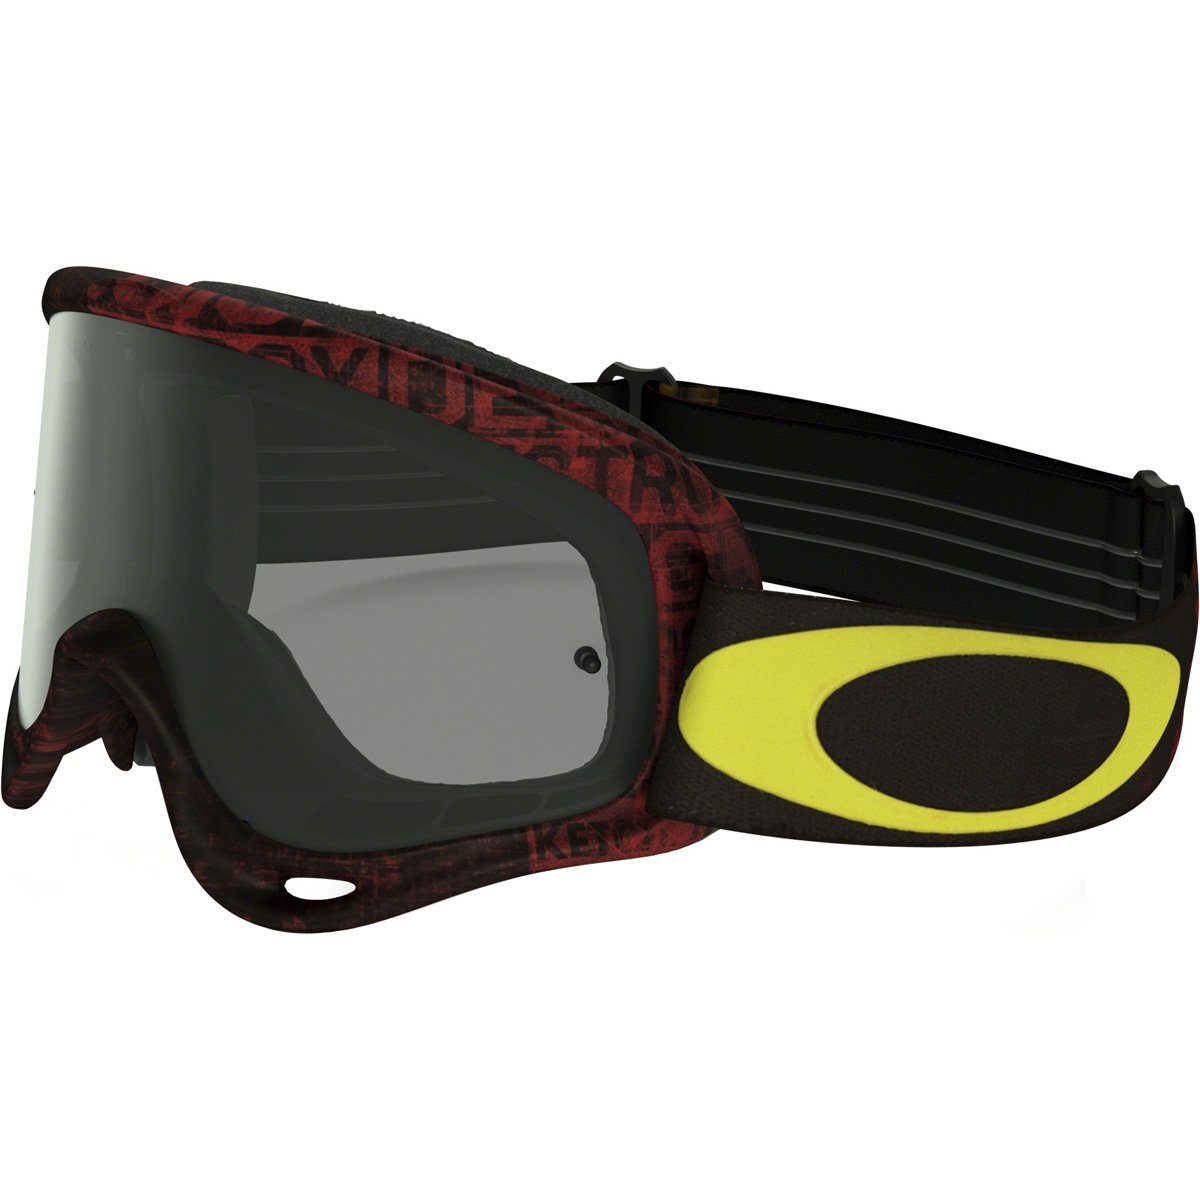 Oakley OO7029-29 Oframe MX Distress Tagline Yel with Dkgry Unisex-Adult Goggles, Medium, Red